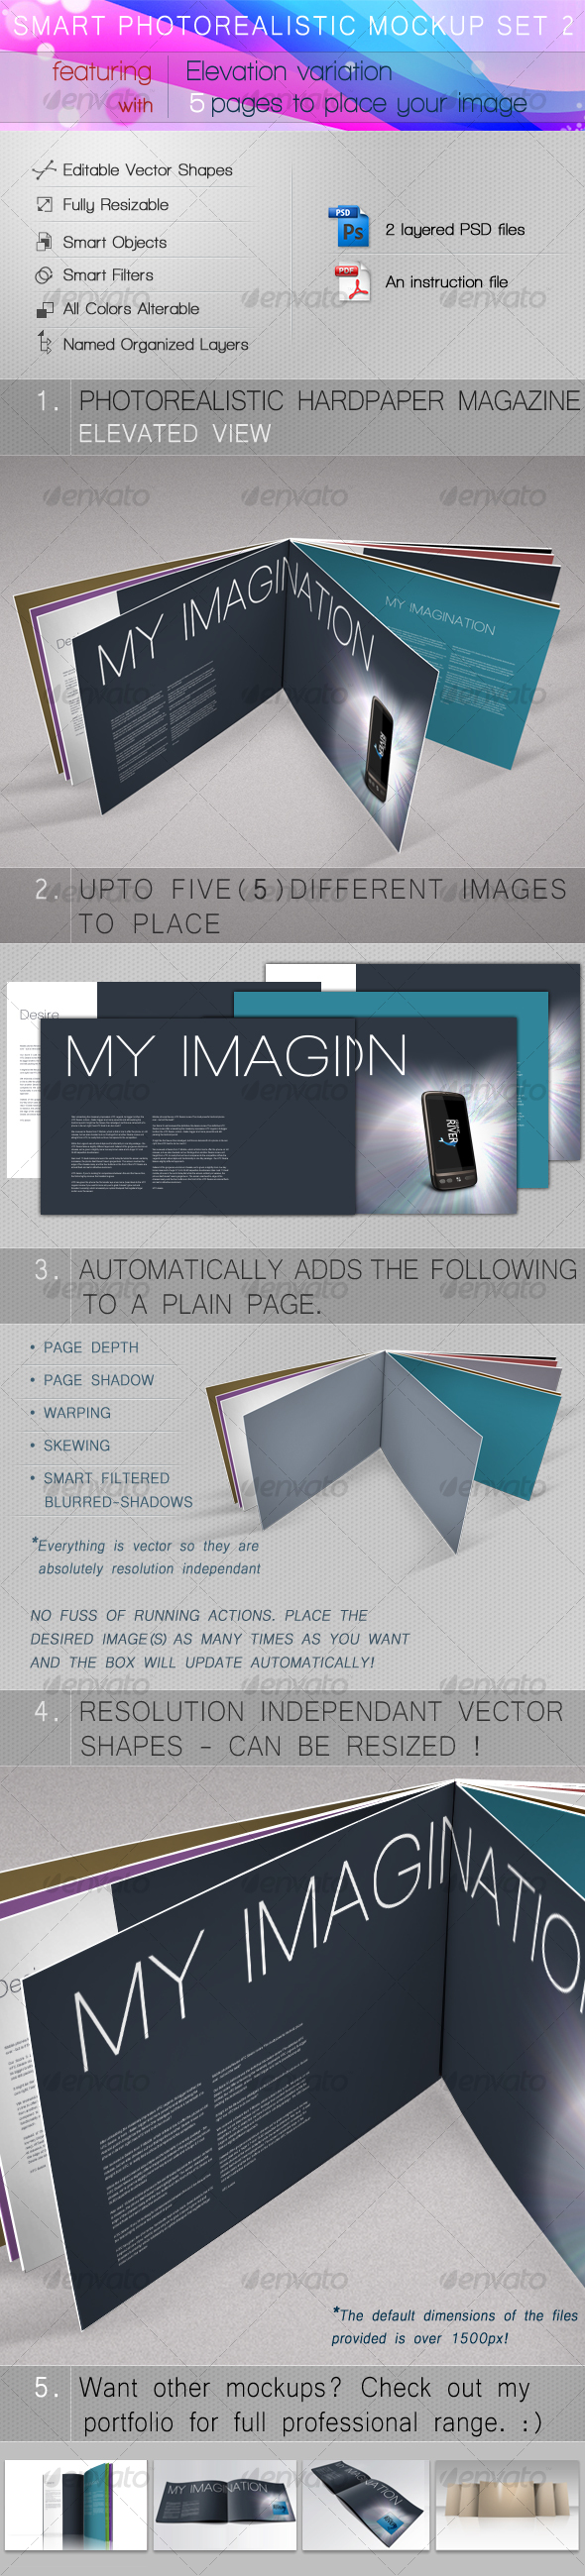 GraphicRiver Smart Photorealistic Mockup Set 2 105841